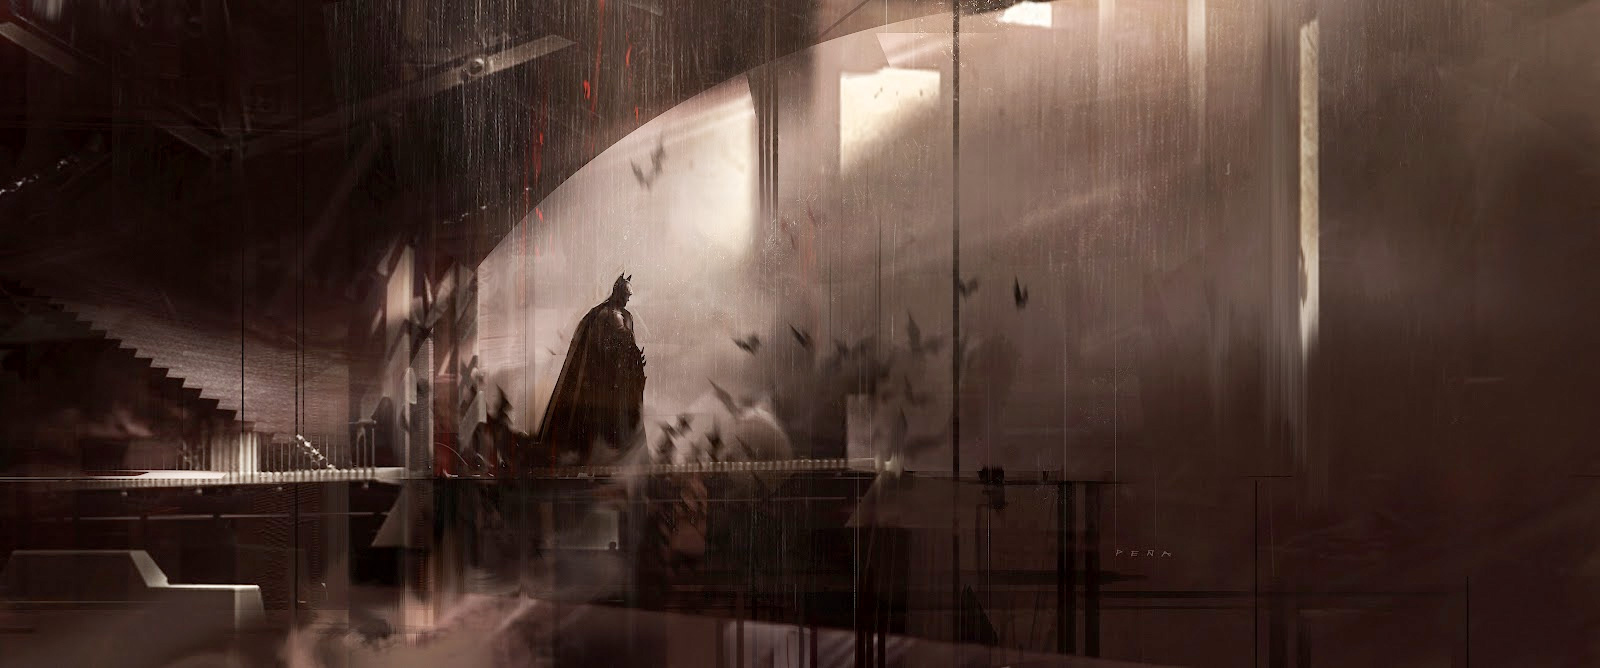 Batman Concepts and Illustrations I